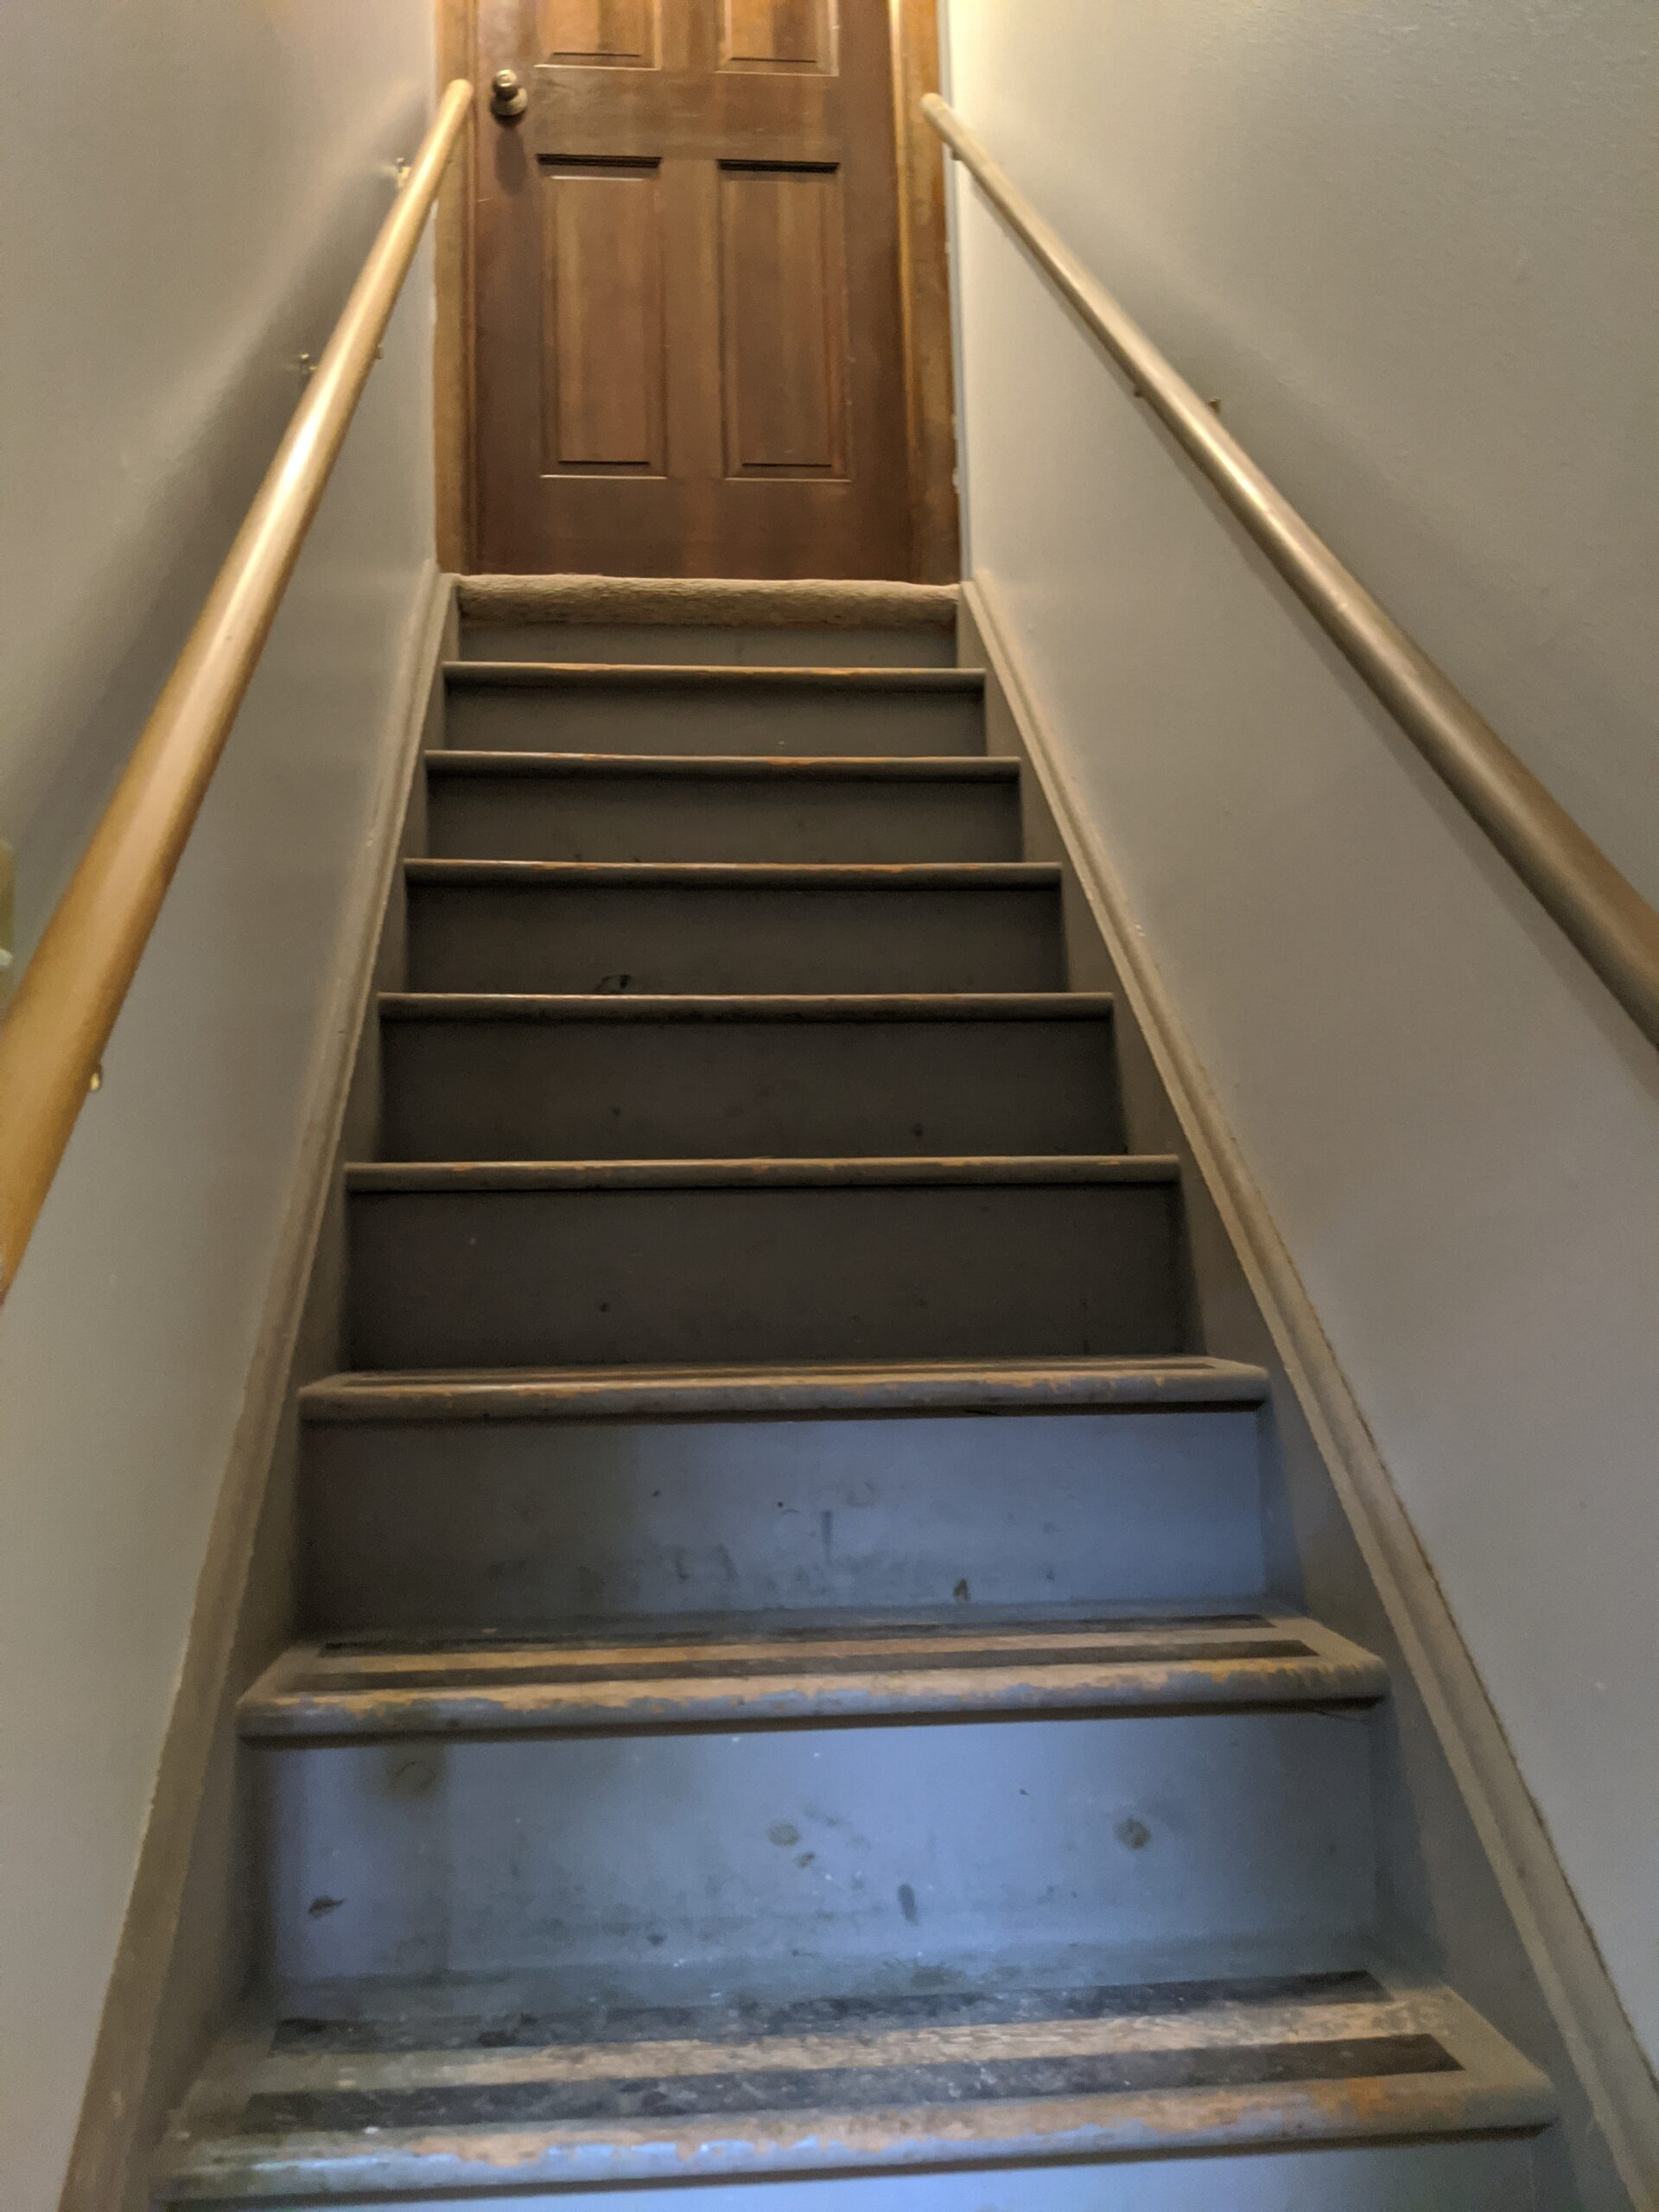 BEFORE: These stairs in the middle of the hallway blocked the potential for better use of the space on both floors.